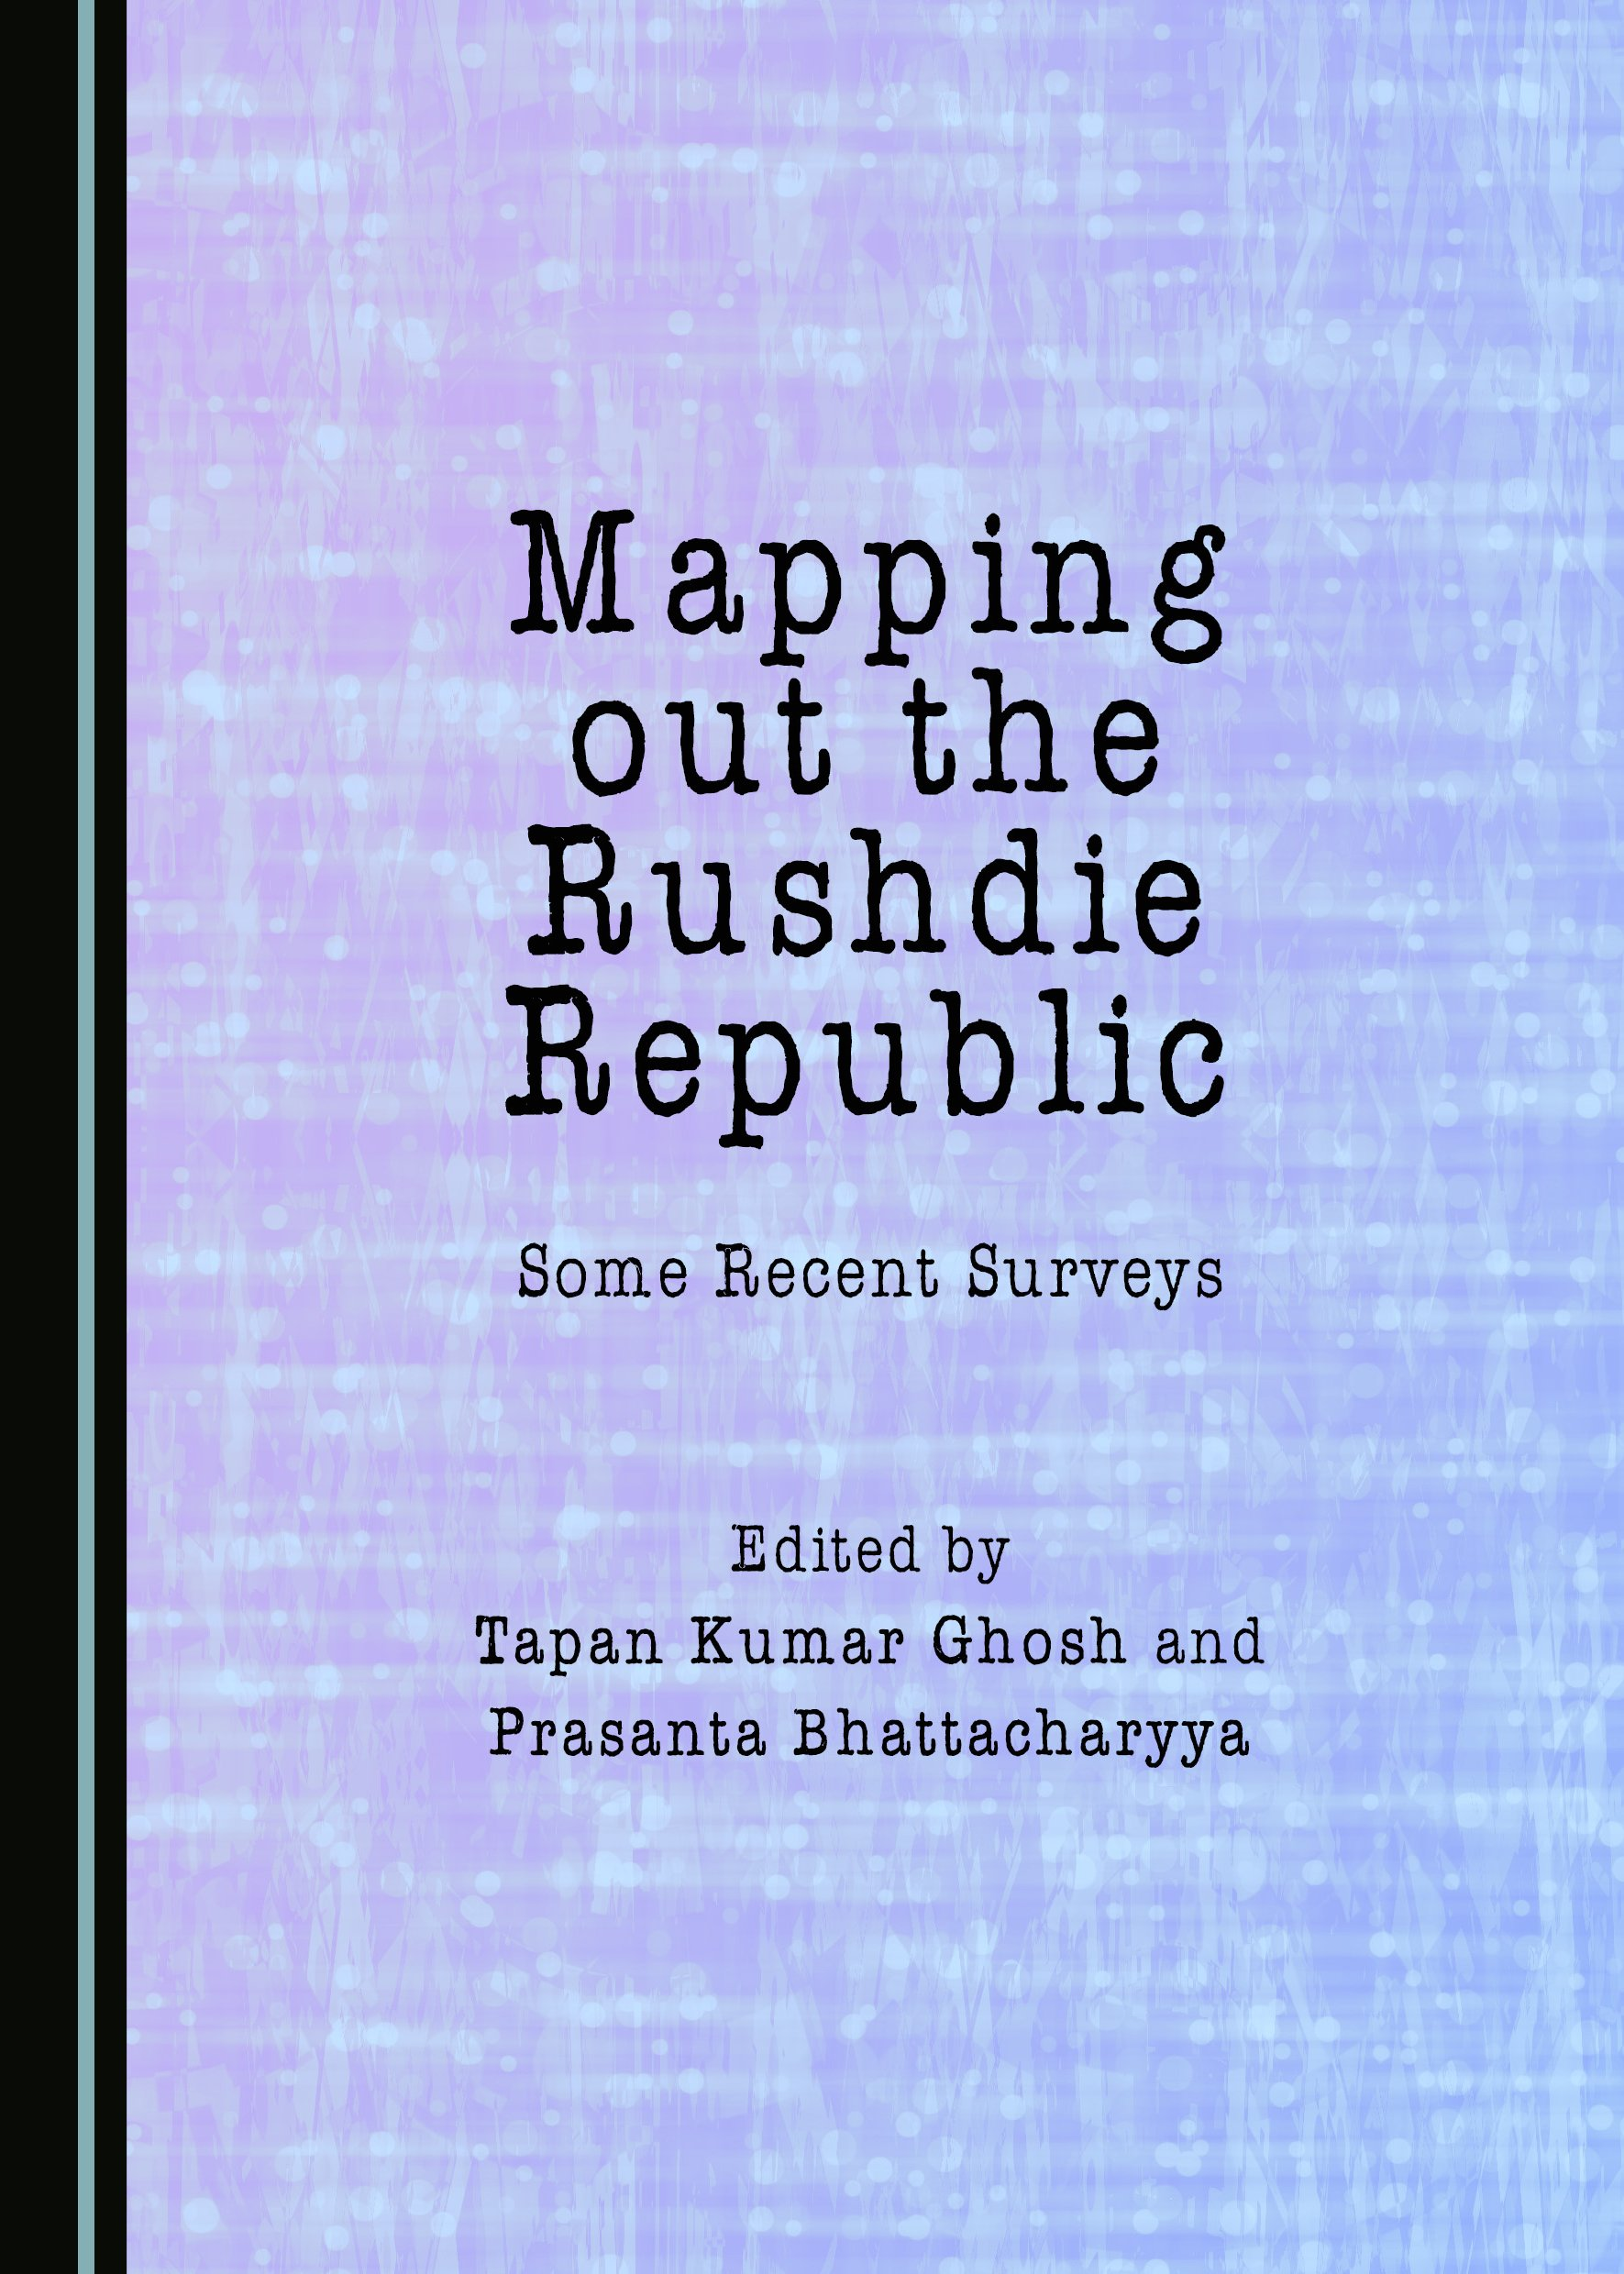 Mapping out the Rushdie Republic: Some Recent Surveys